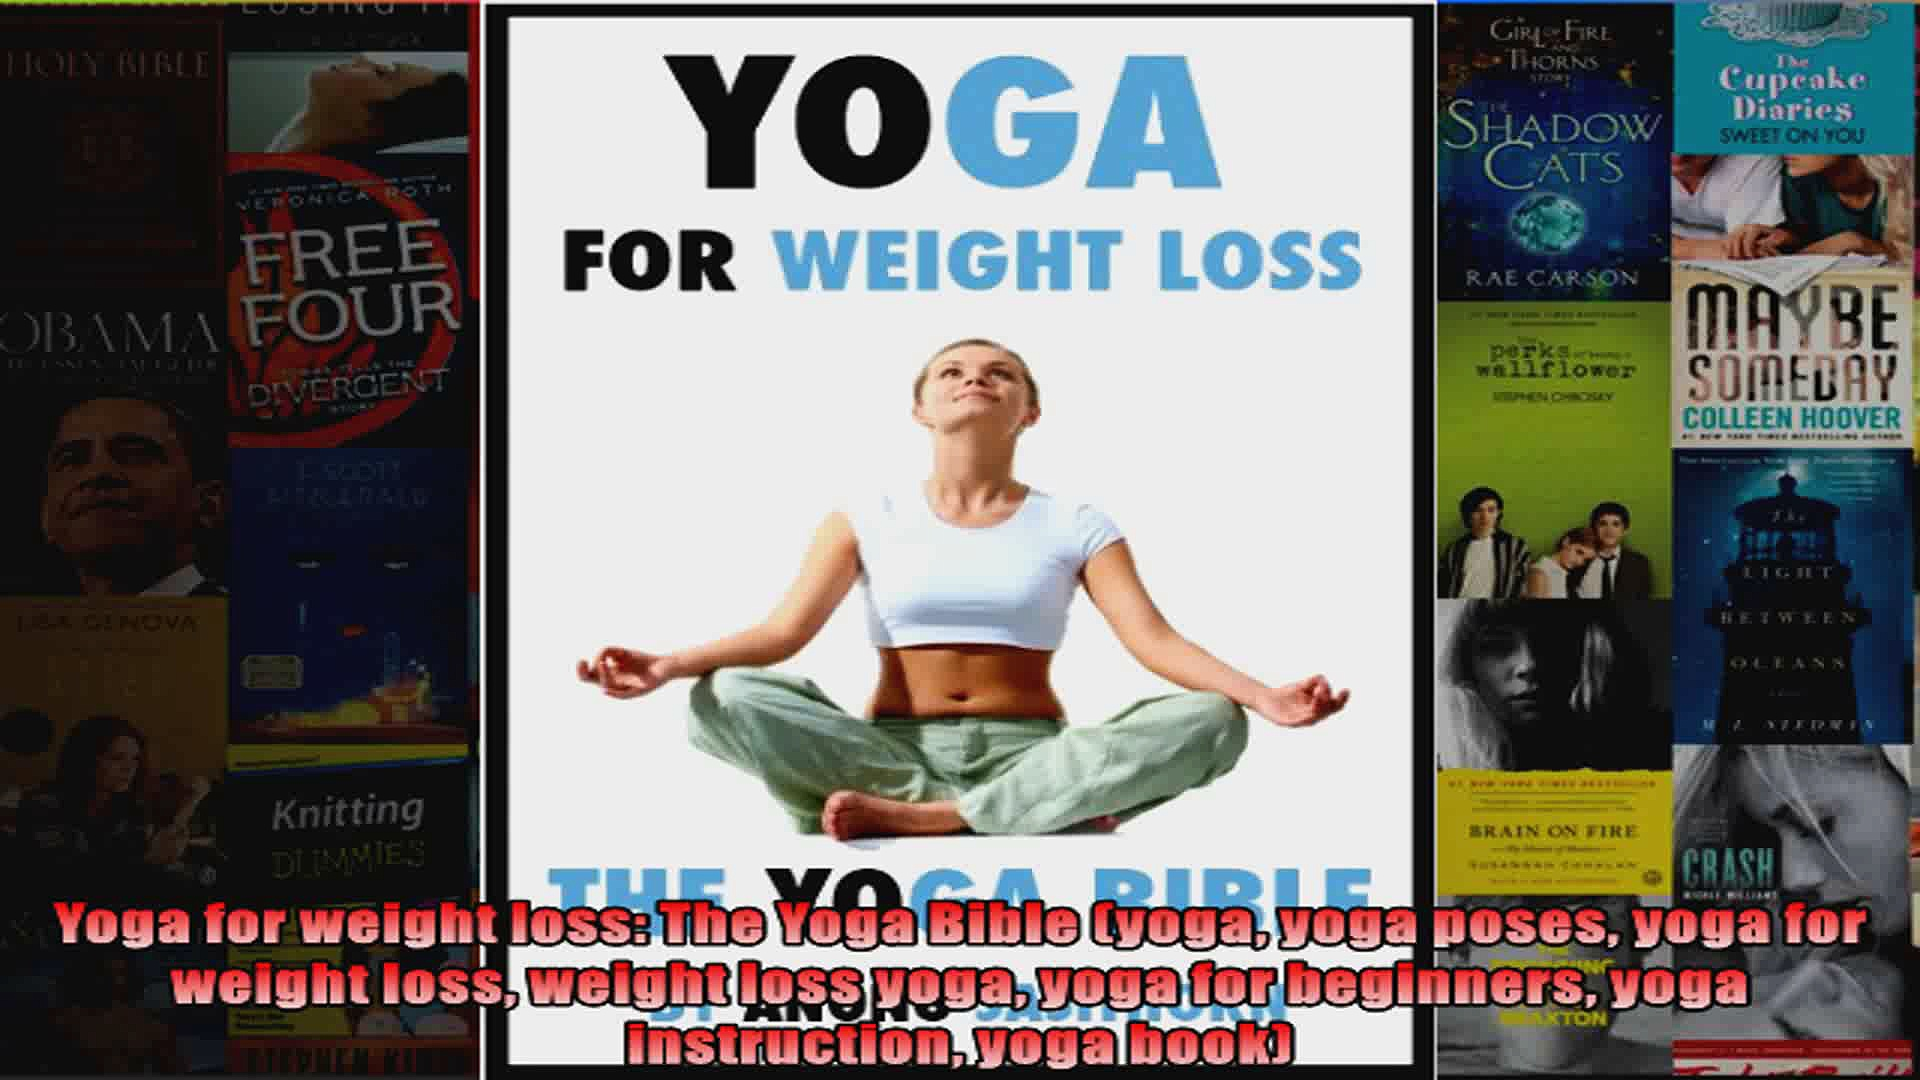 Read  Yoga for weight loss The Yoga Bible yoga yoga poses yoga for weight loss weight loss  Full EBook